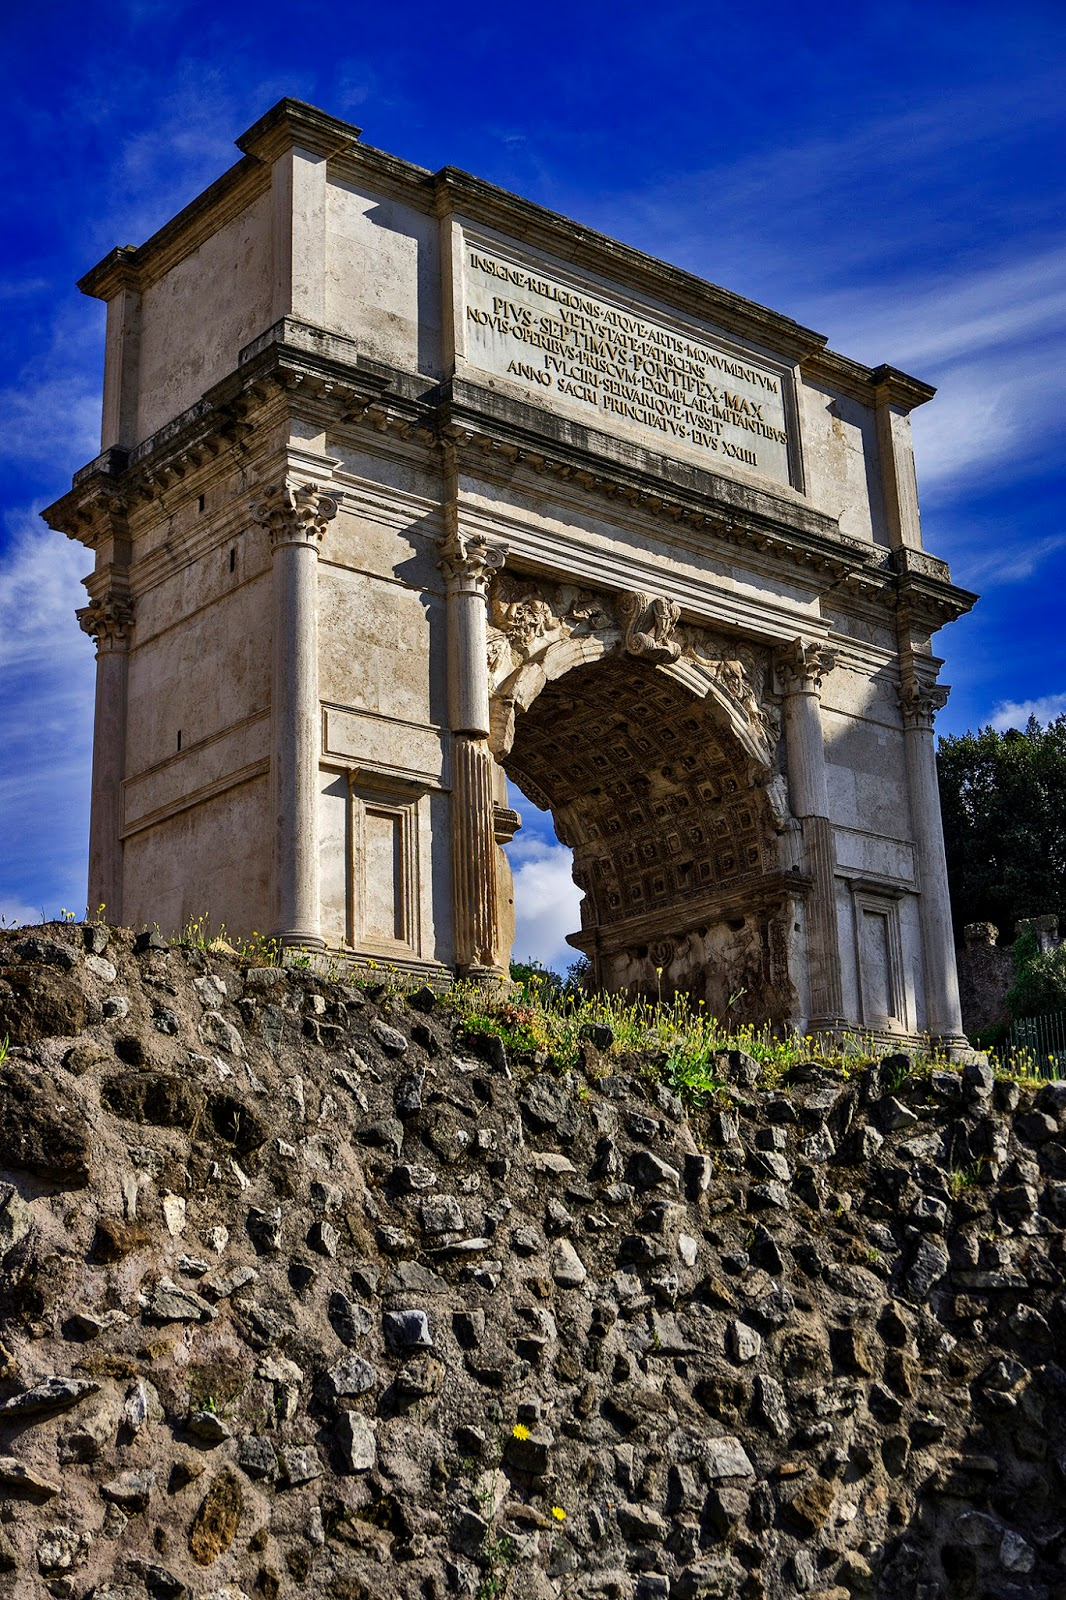 Arch of Titus at the Forum in Rome, Italy